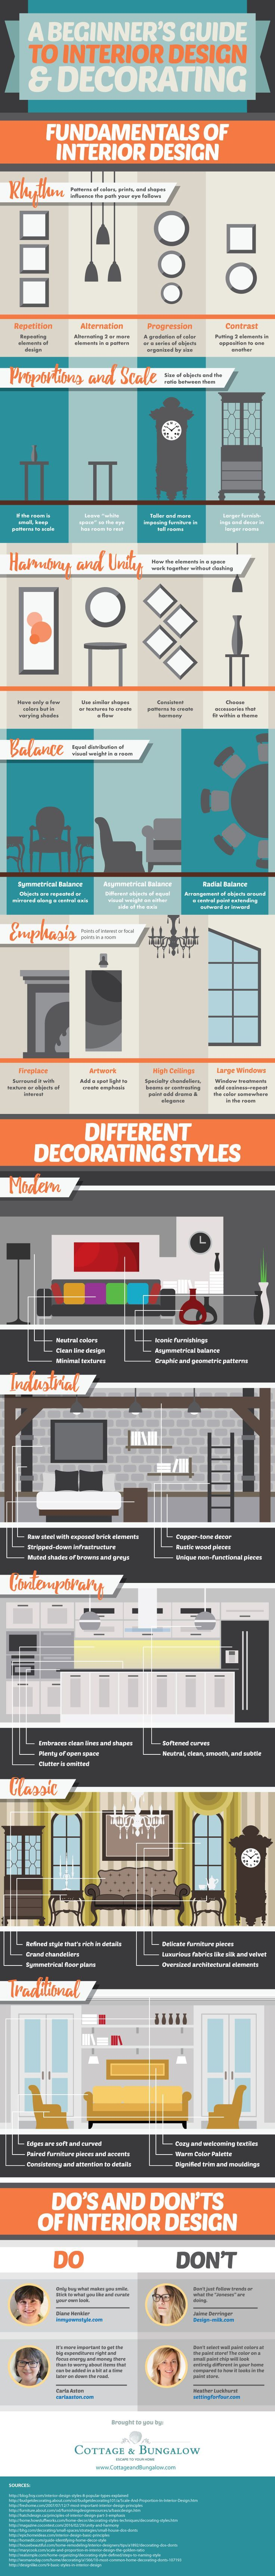 The Beginner S Guide To Interior Design And Decorating Www Settingforfour